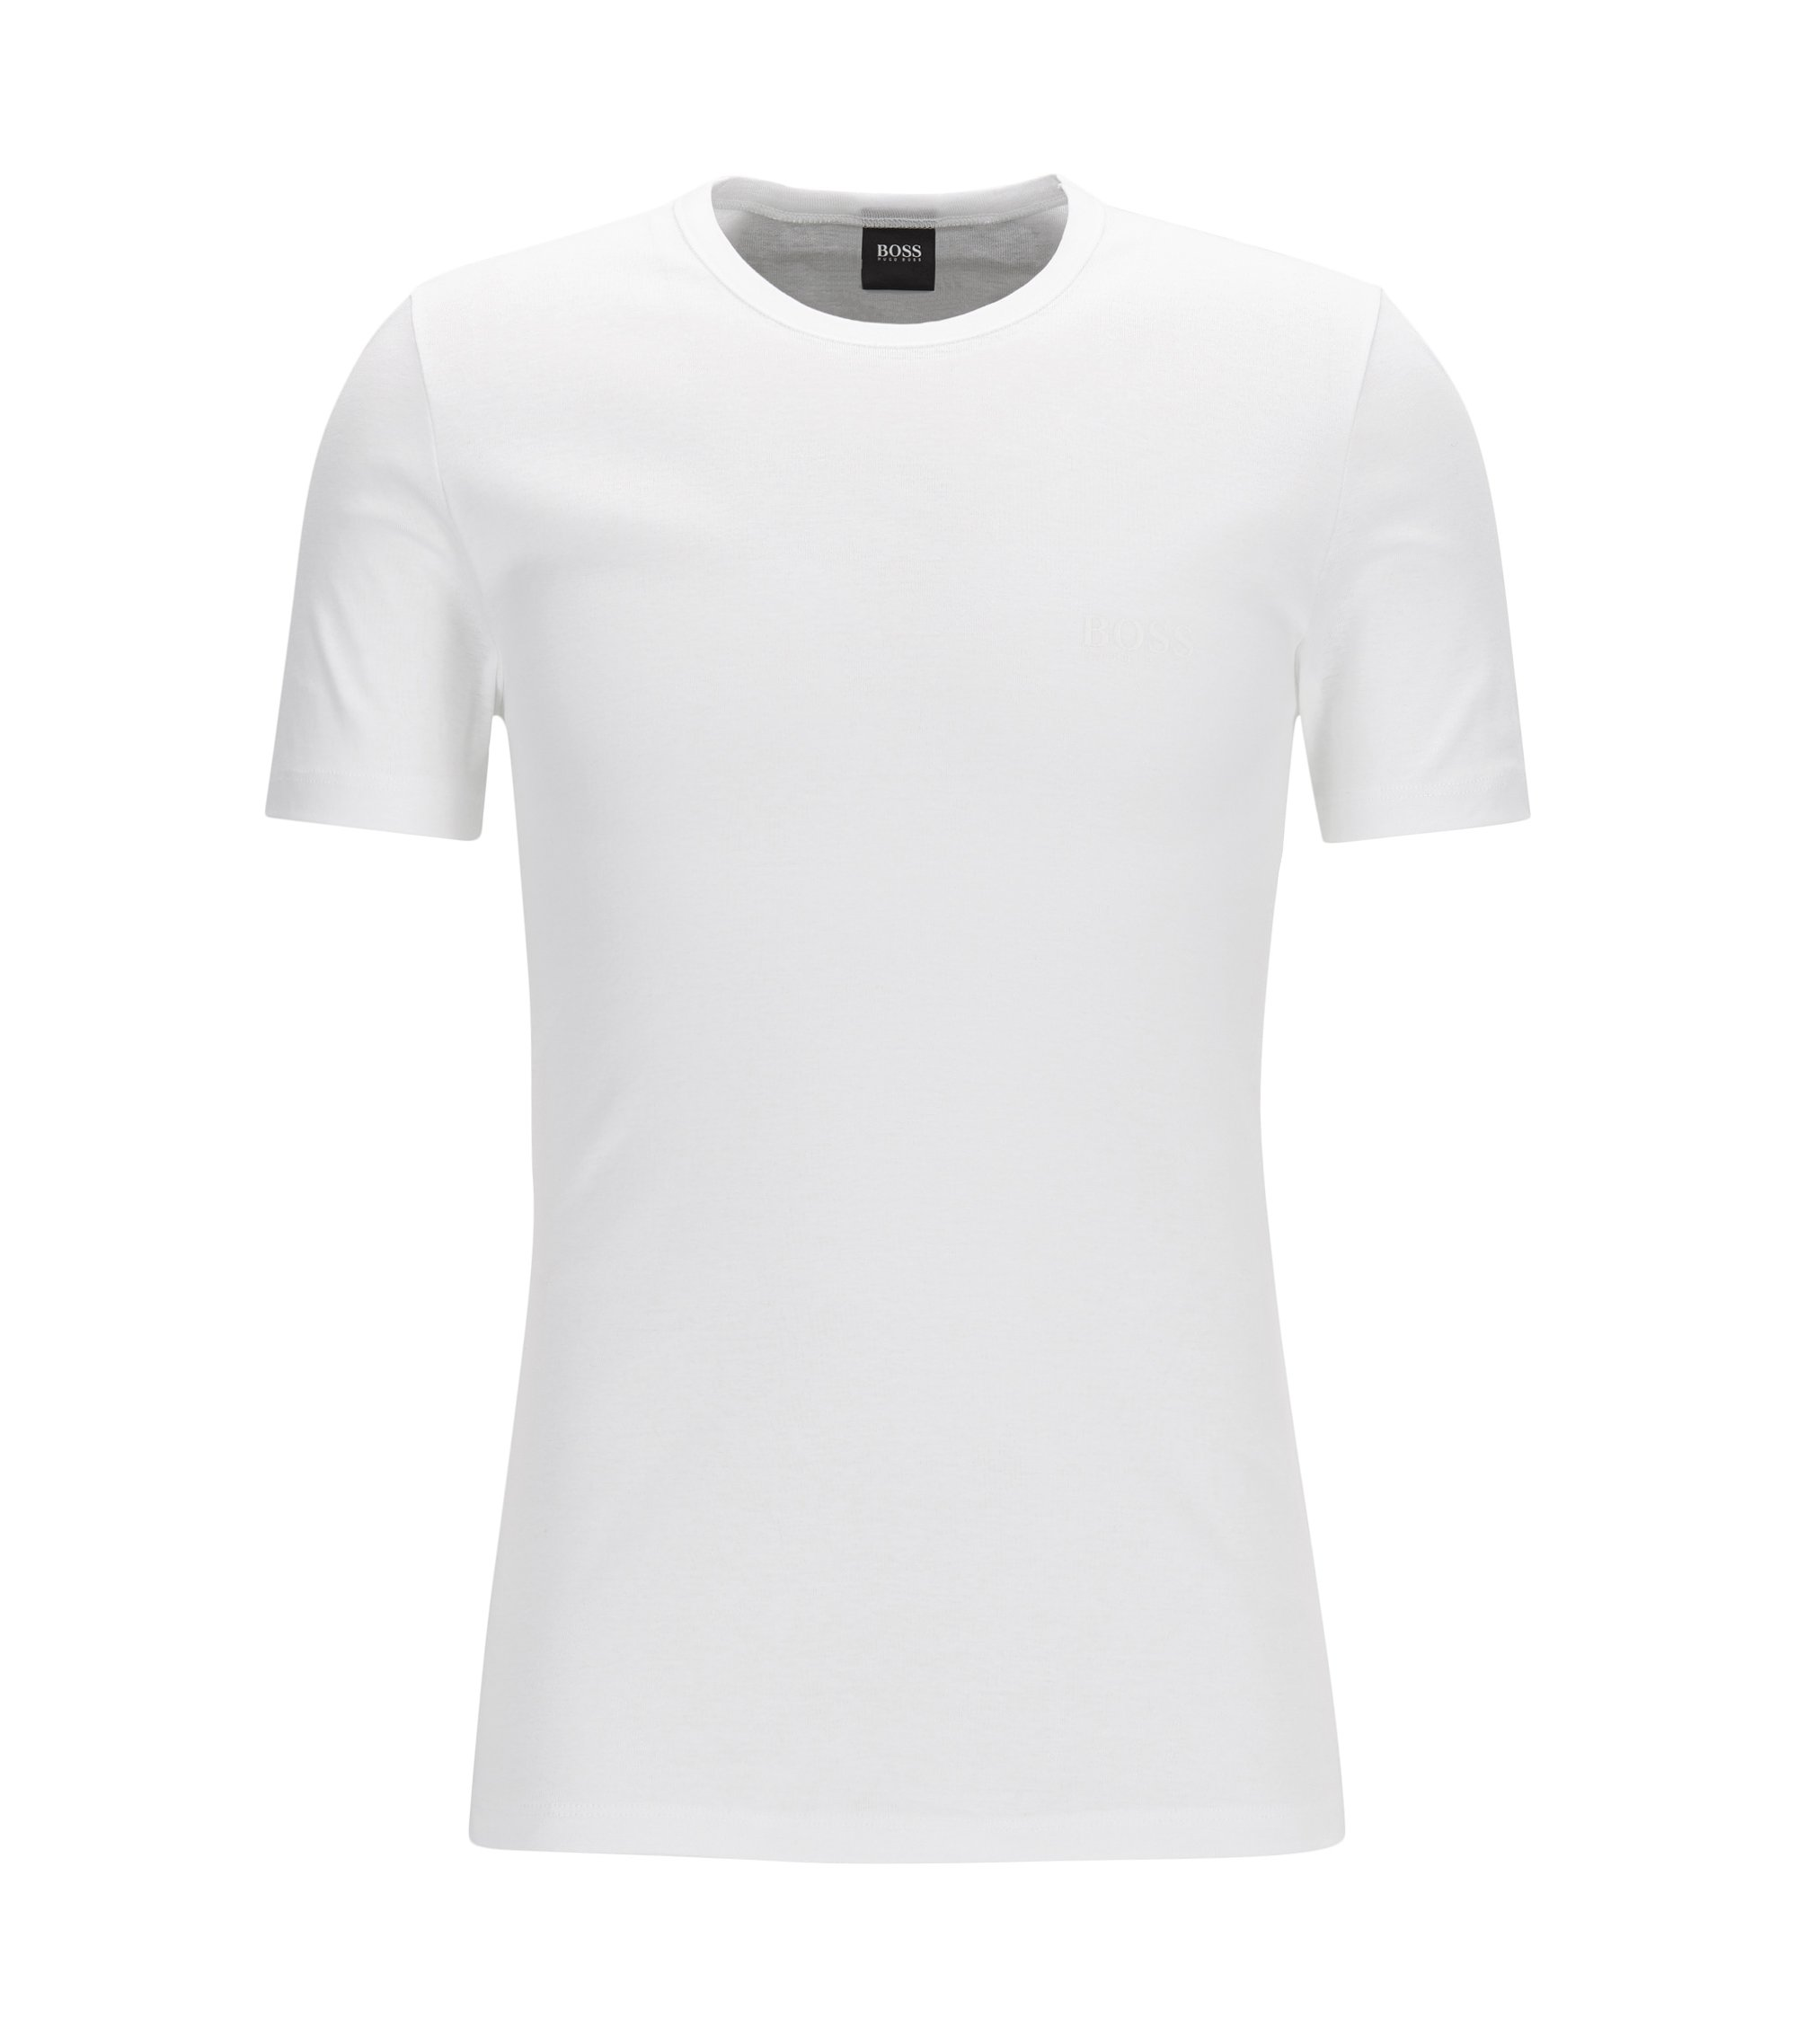 Camiseta interior regular fit en algodón de canalé, Blanco